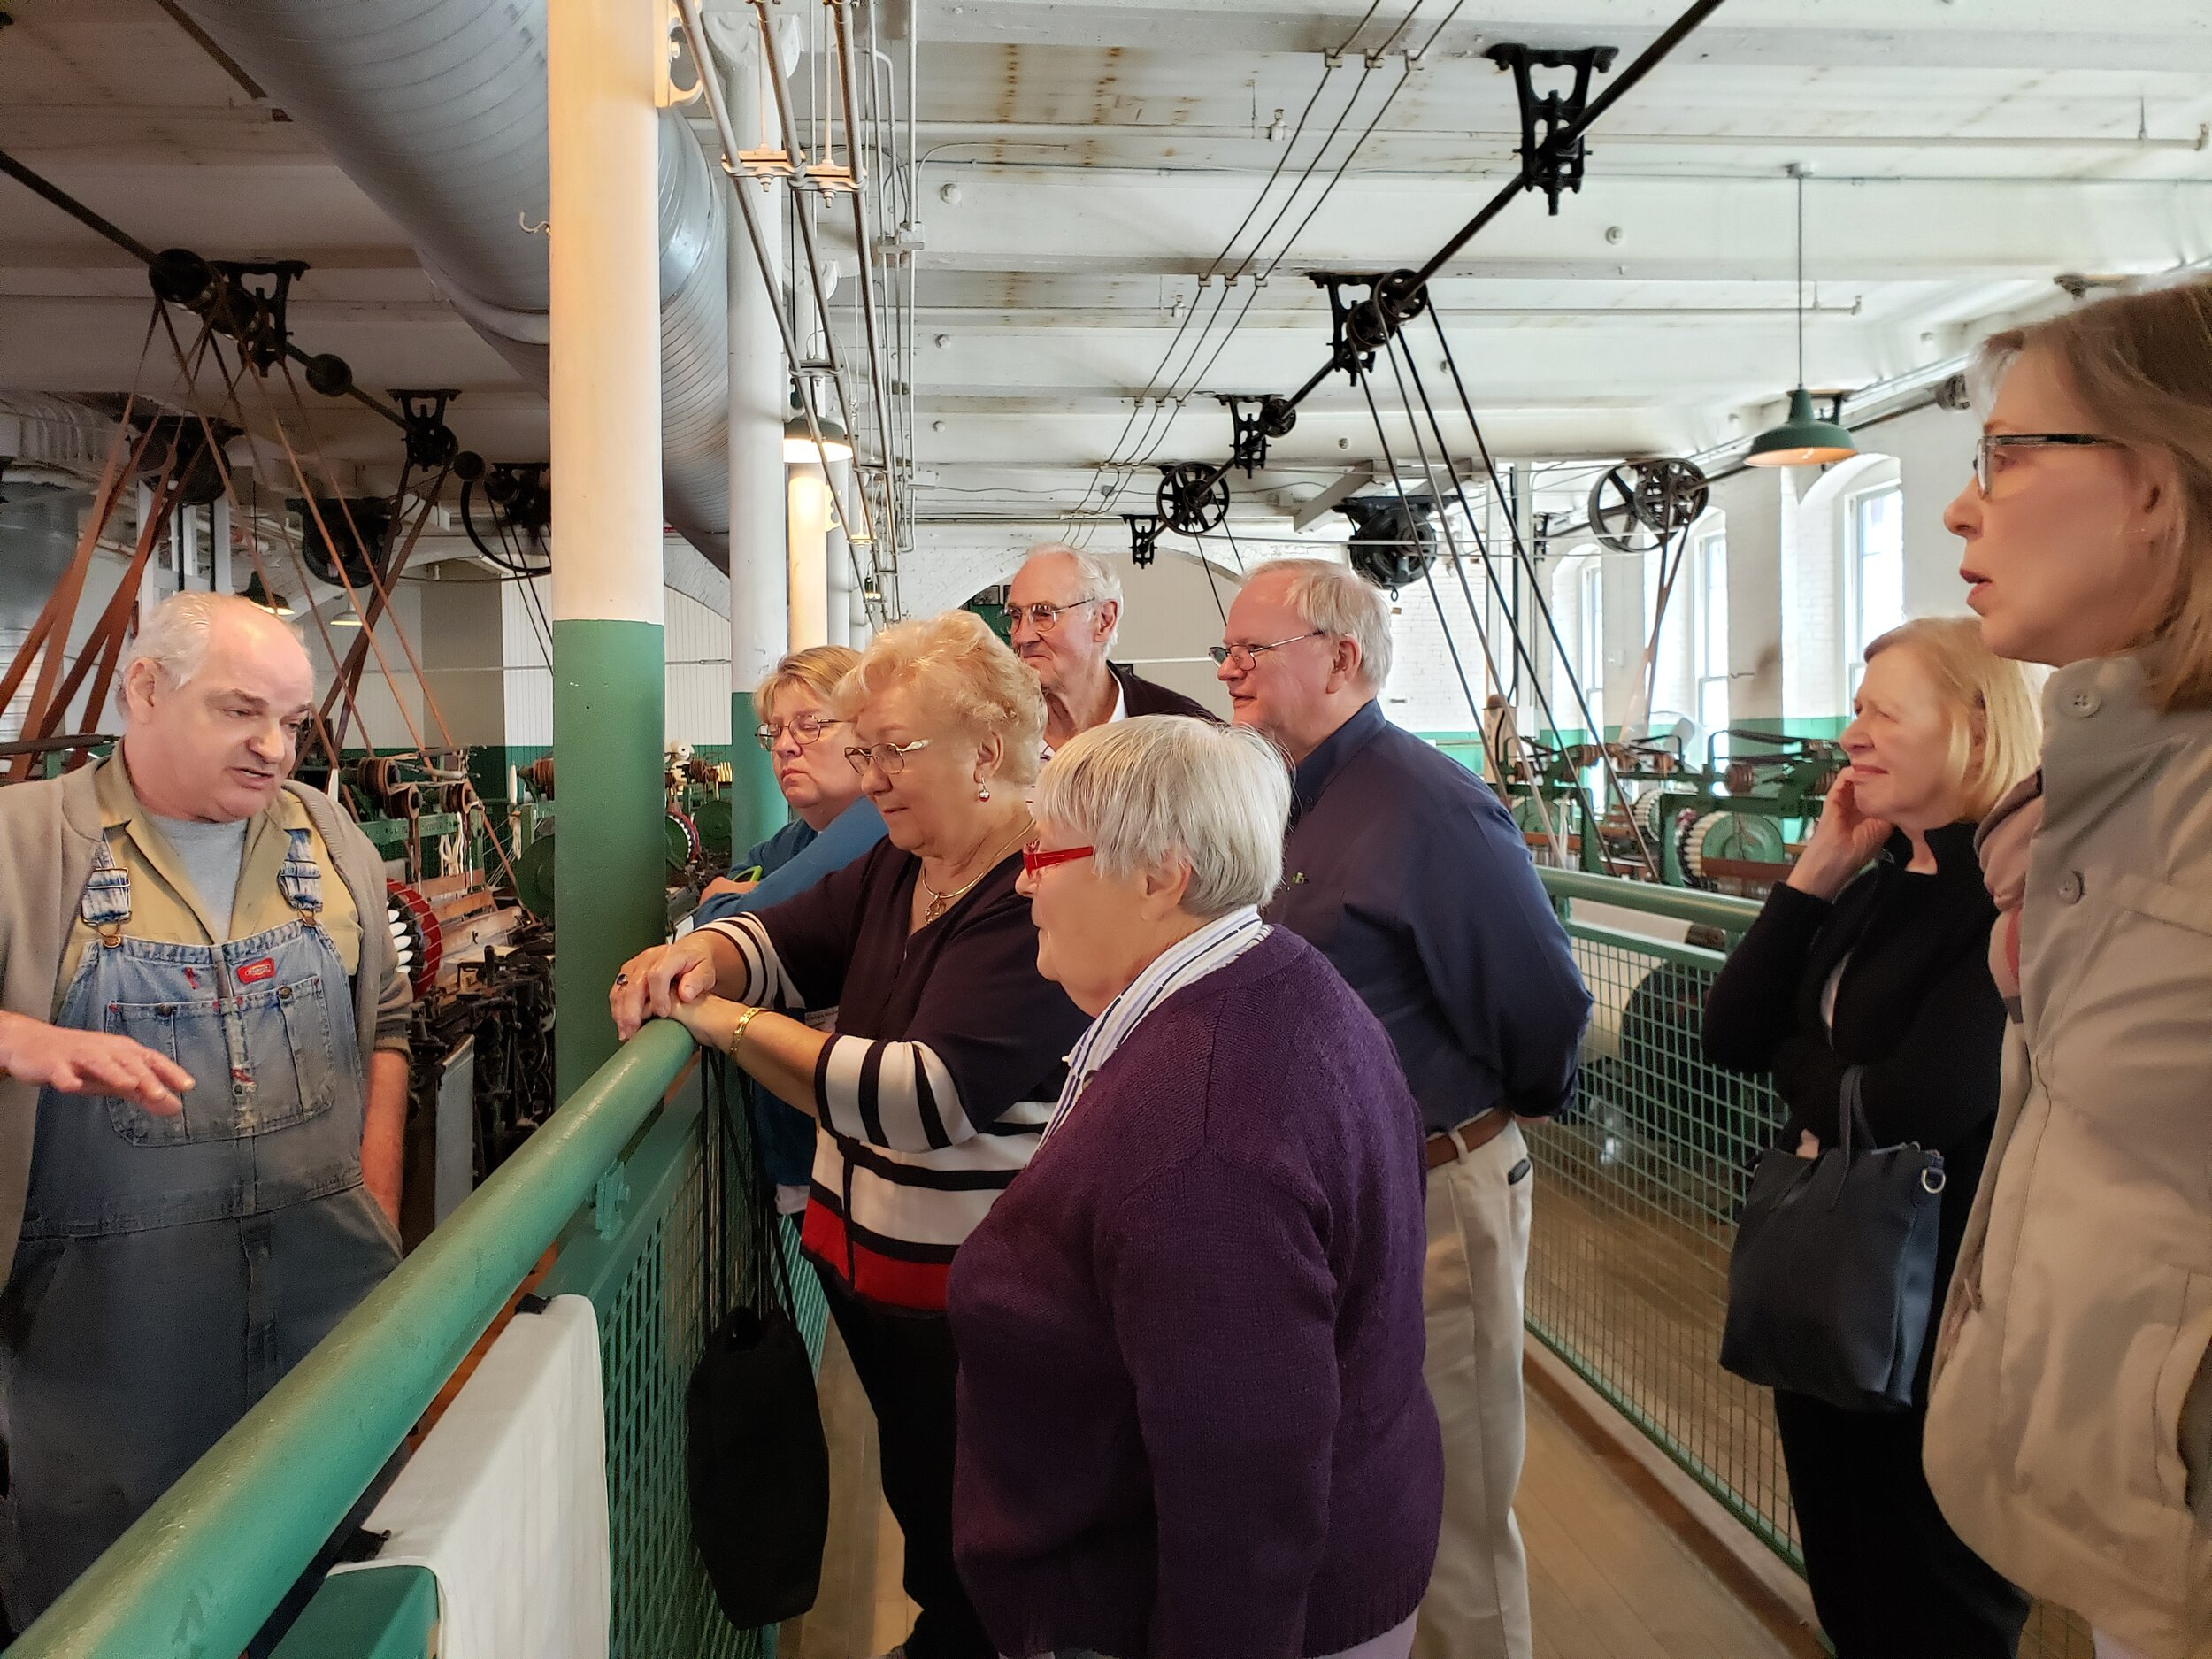 - St. John seniors enjoying a visit to the Boott Mill Museum in Lowell and a lunch.